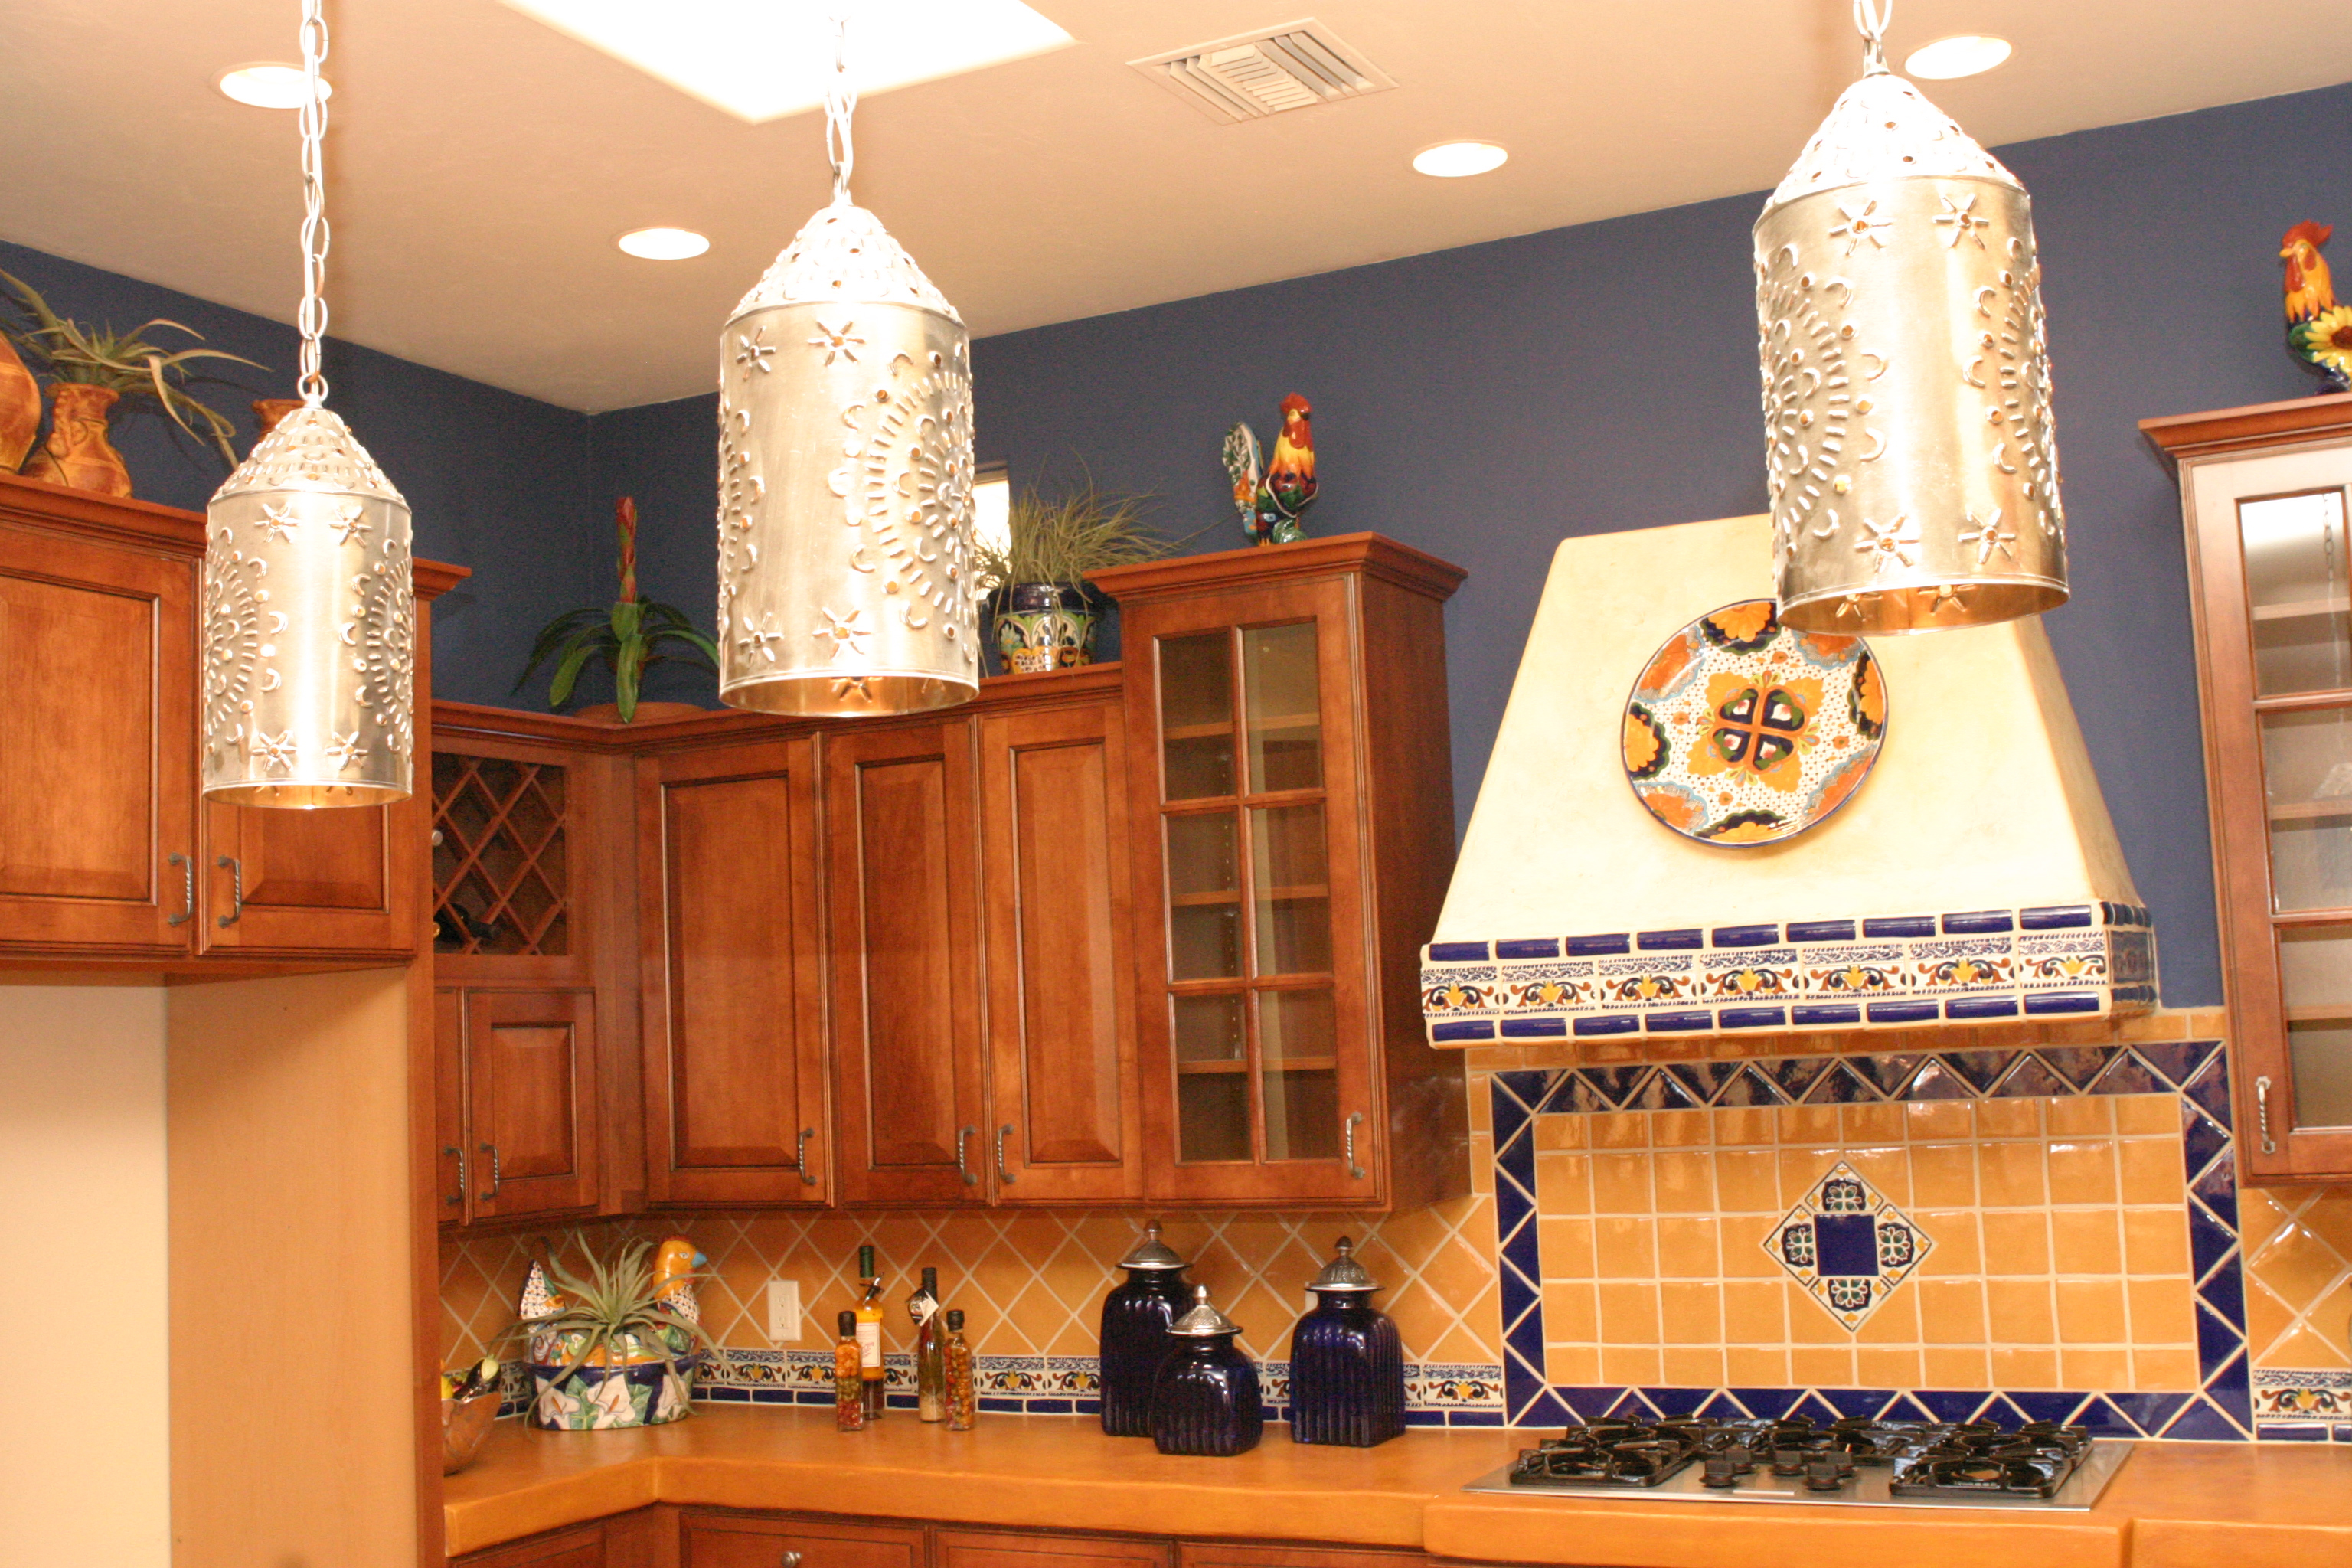 A kitchen with organge and blue tiles on the wall above a granite countertop